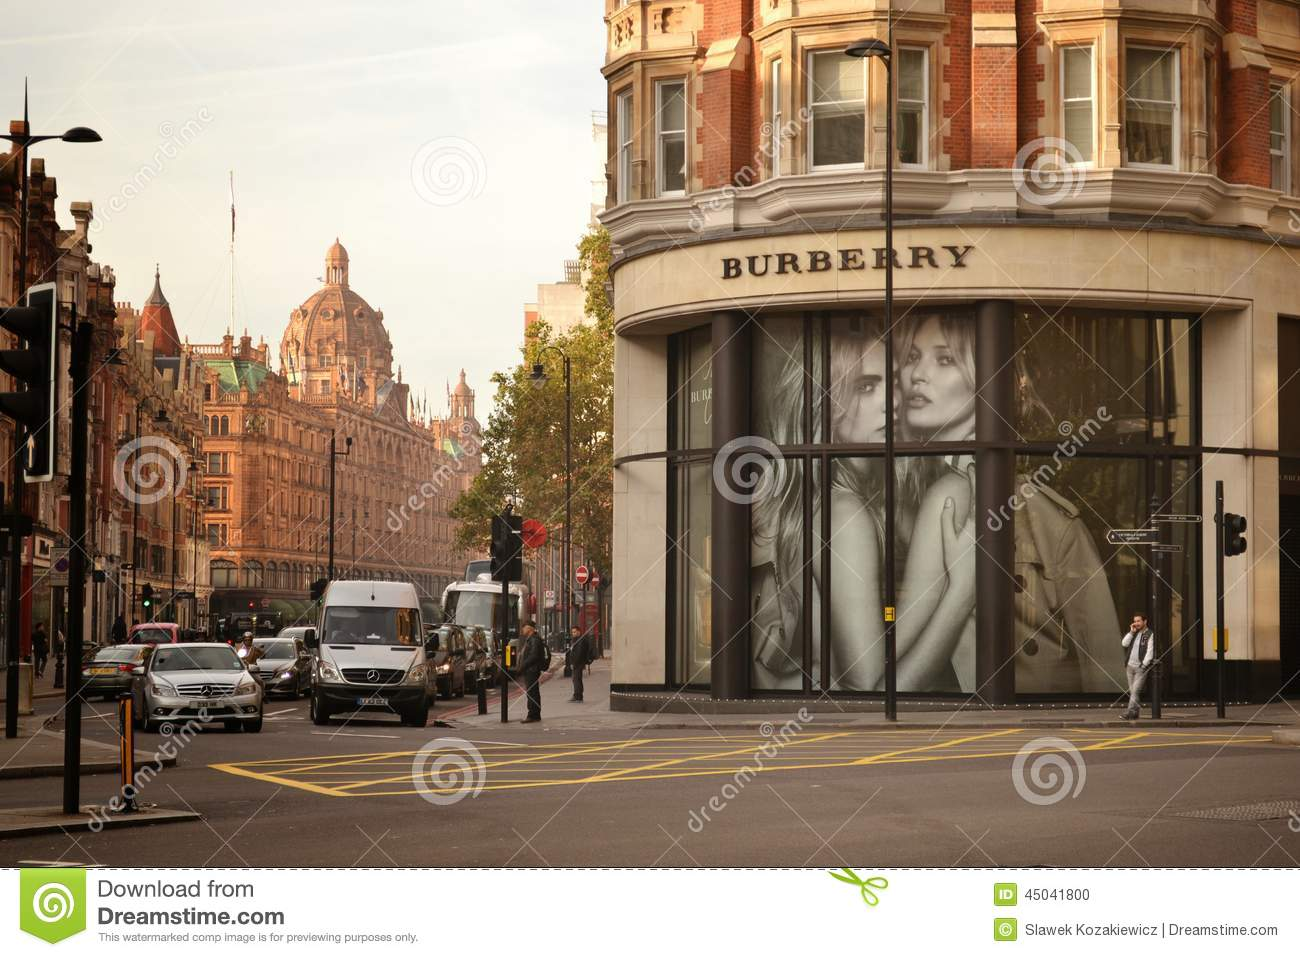 Burberry-Shop Knightsbridge London